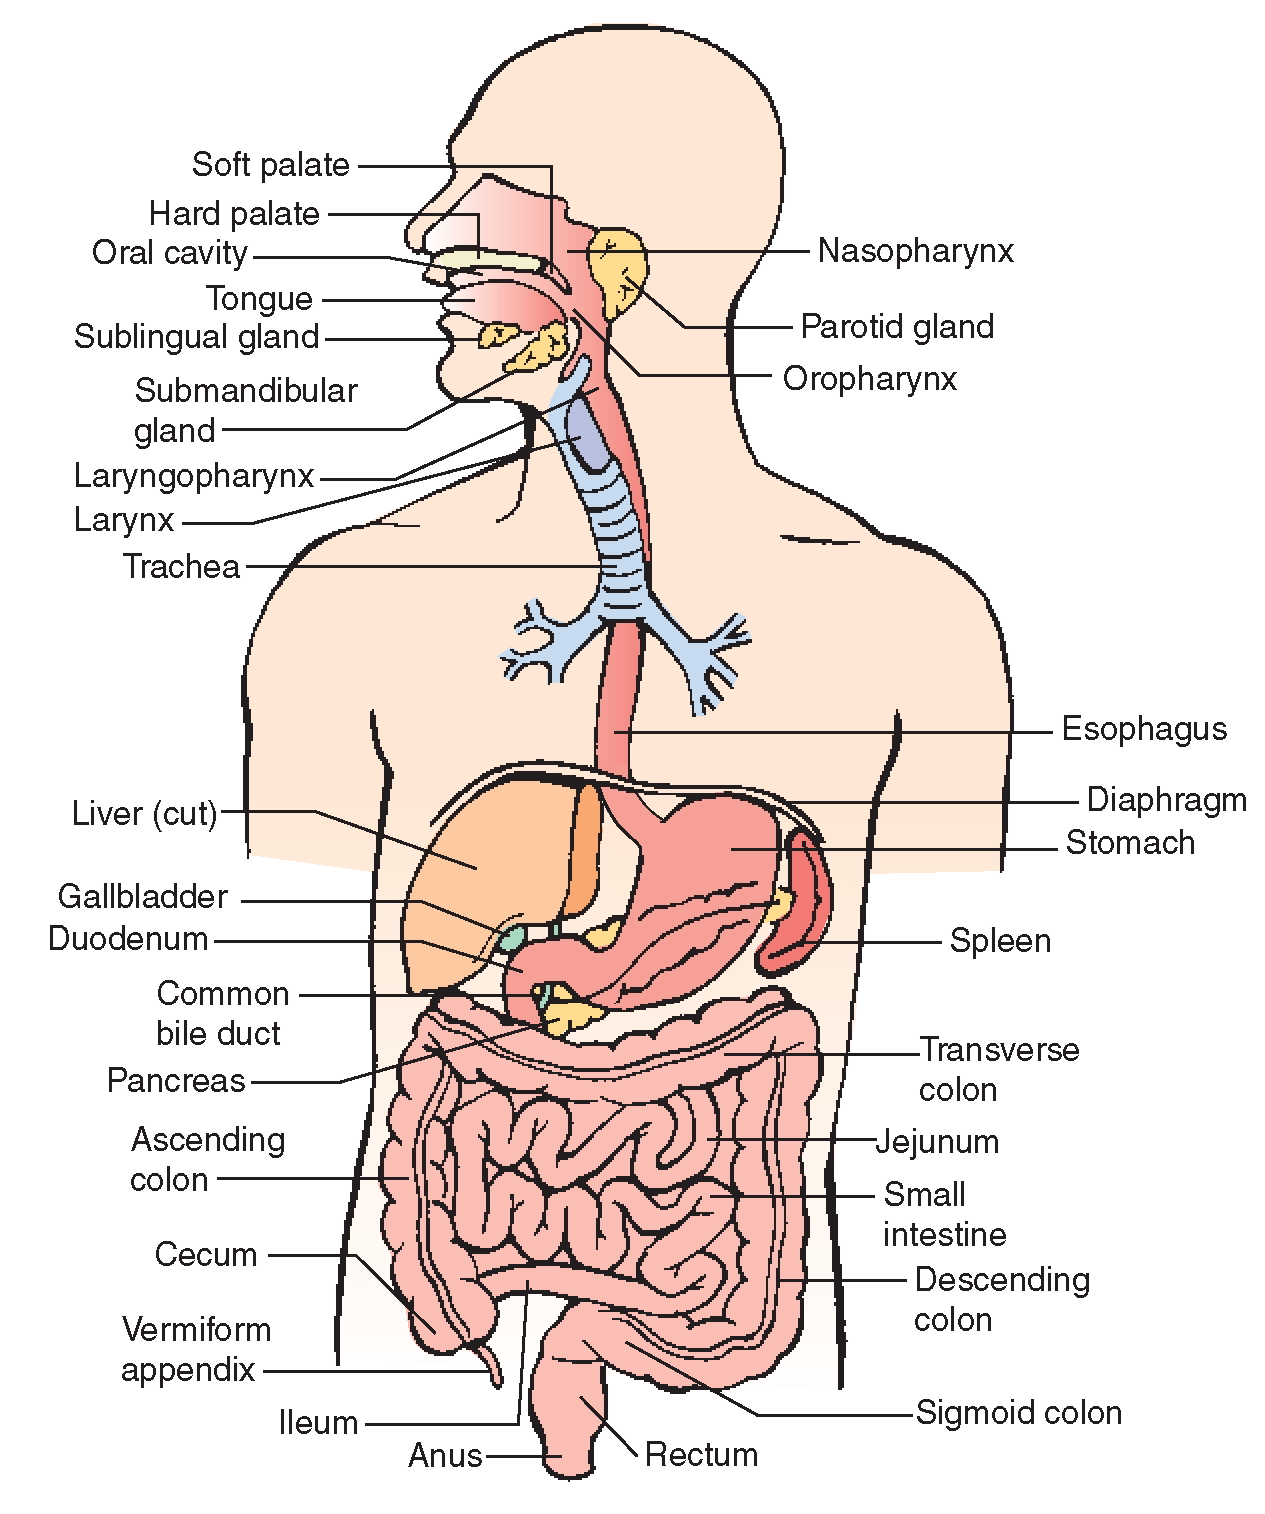 hight resolution of anatomy and physiology understanding the digestive system